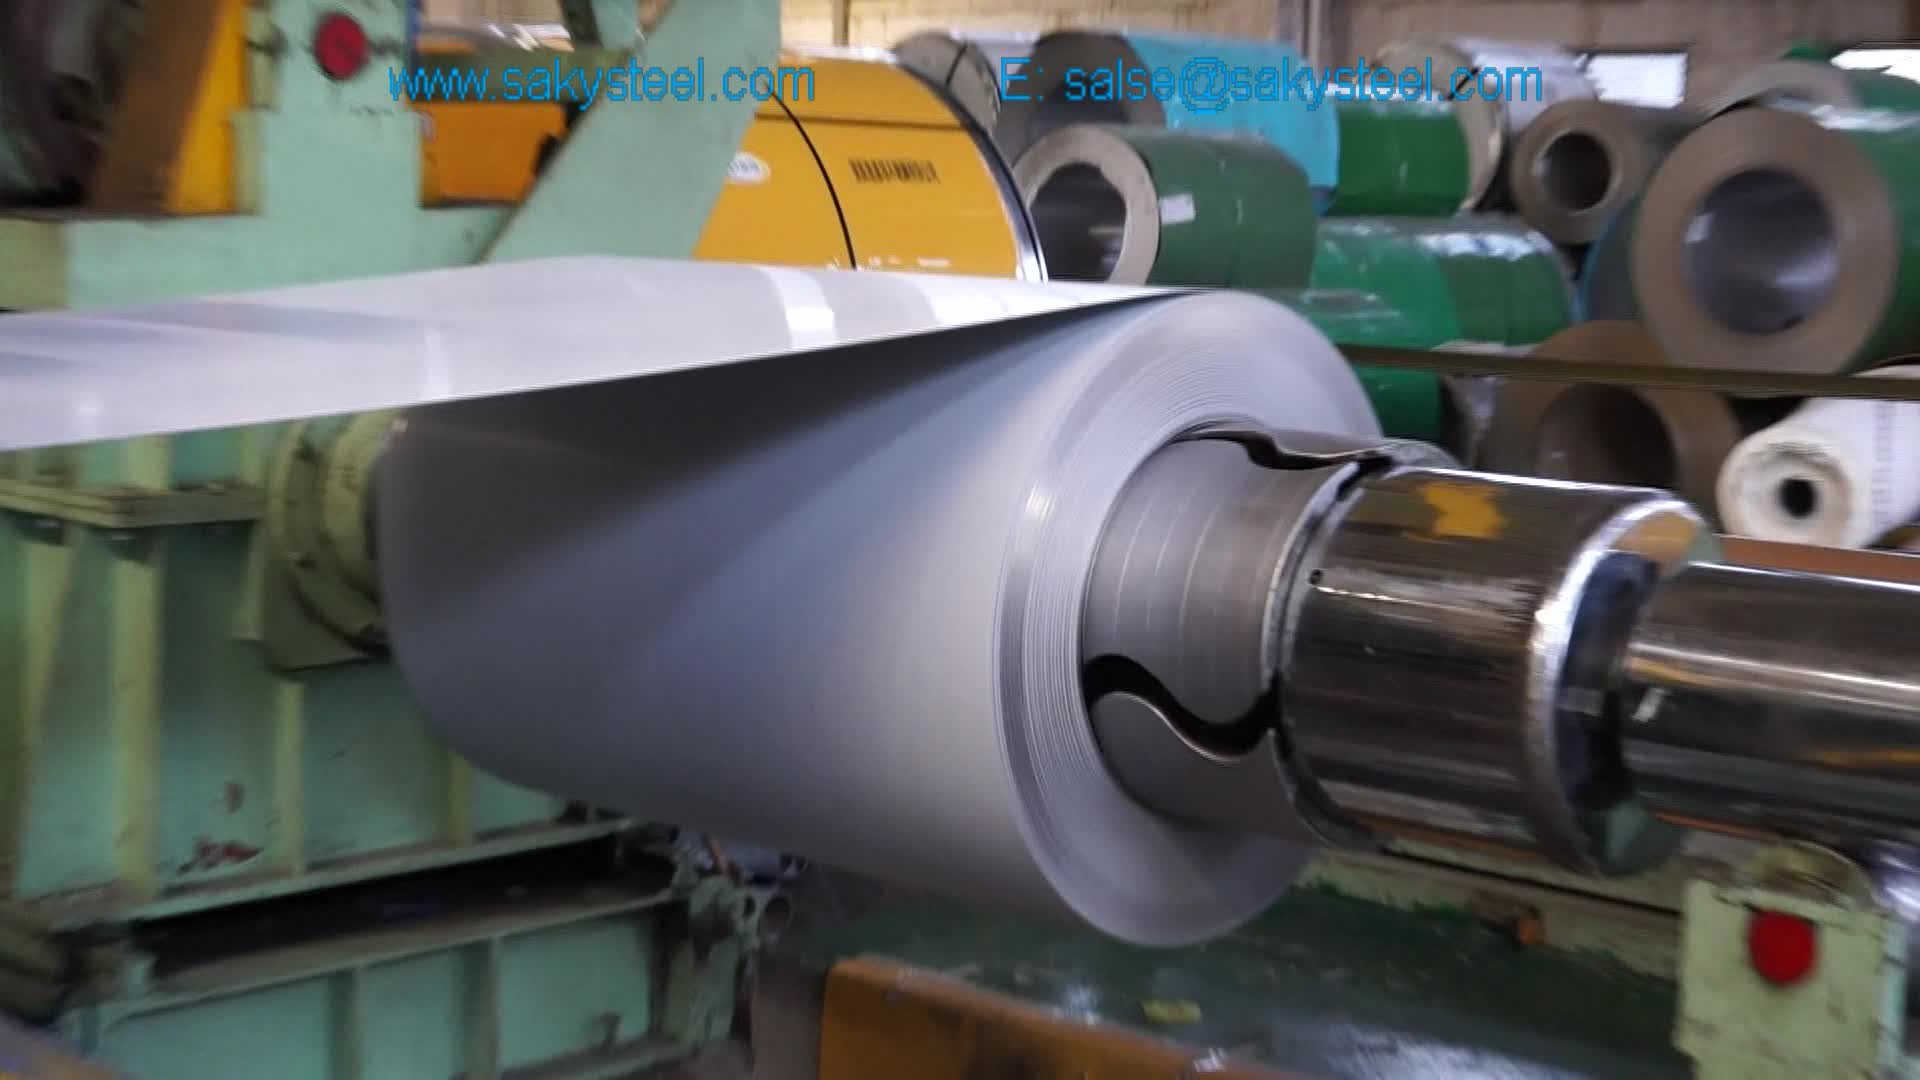 Factory Price AISI 201 304 304L 309S 310S 316 316L 317 321 347 253MA 409 410 410S 420 430 Stainless Steel Sheet